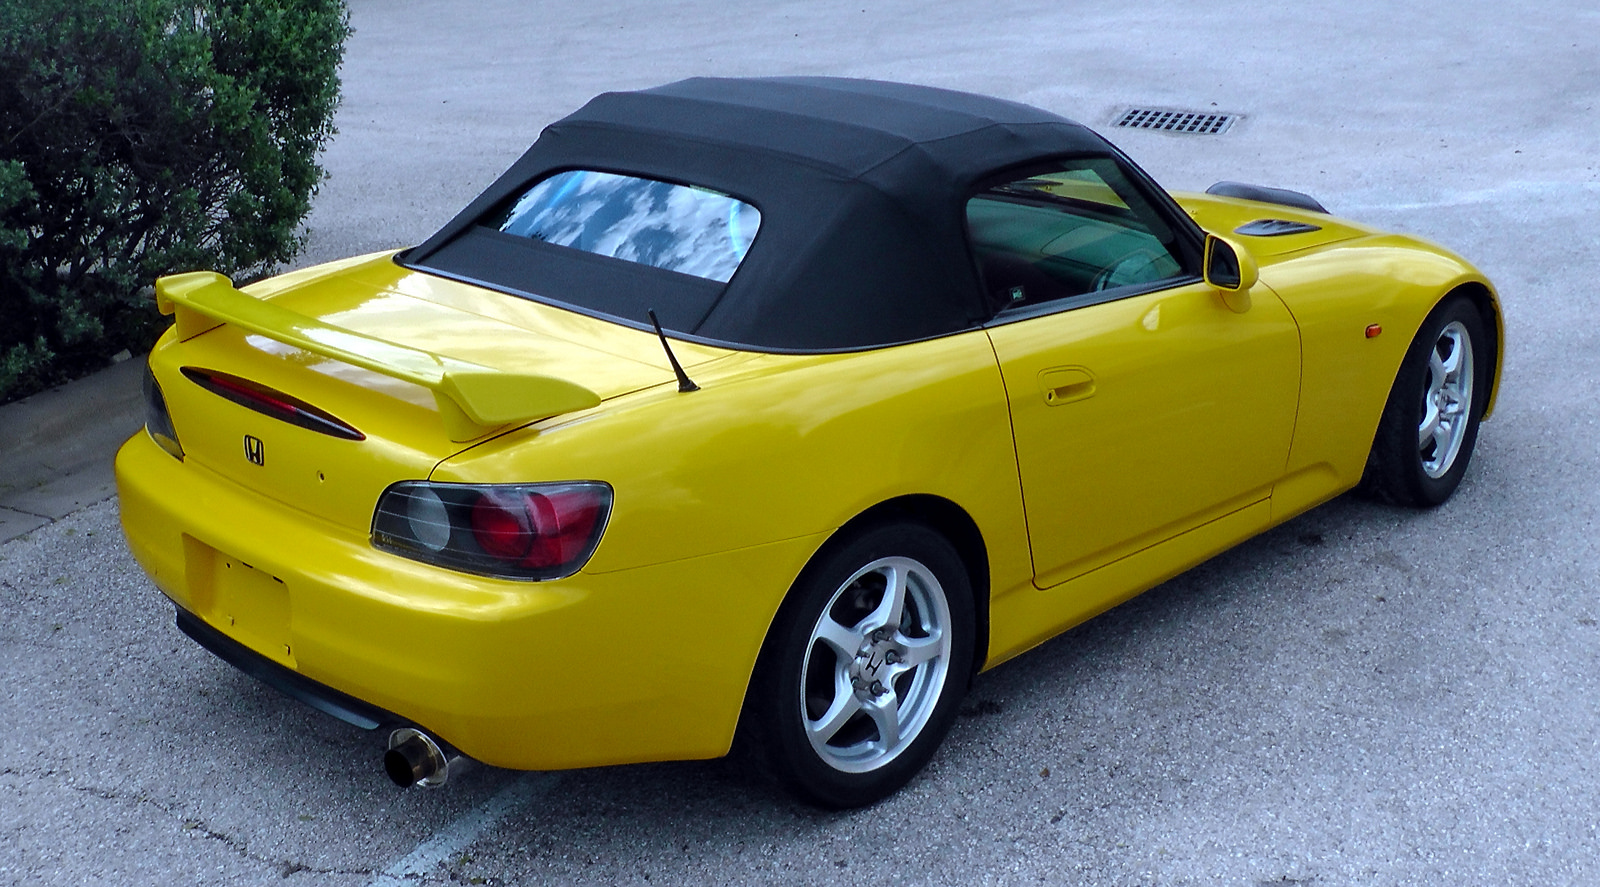 Turbo S2000 For Sale - Built 425whpEnthusiast Owned